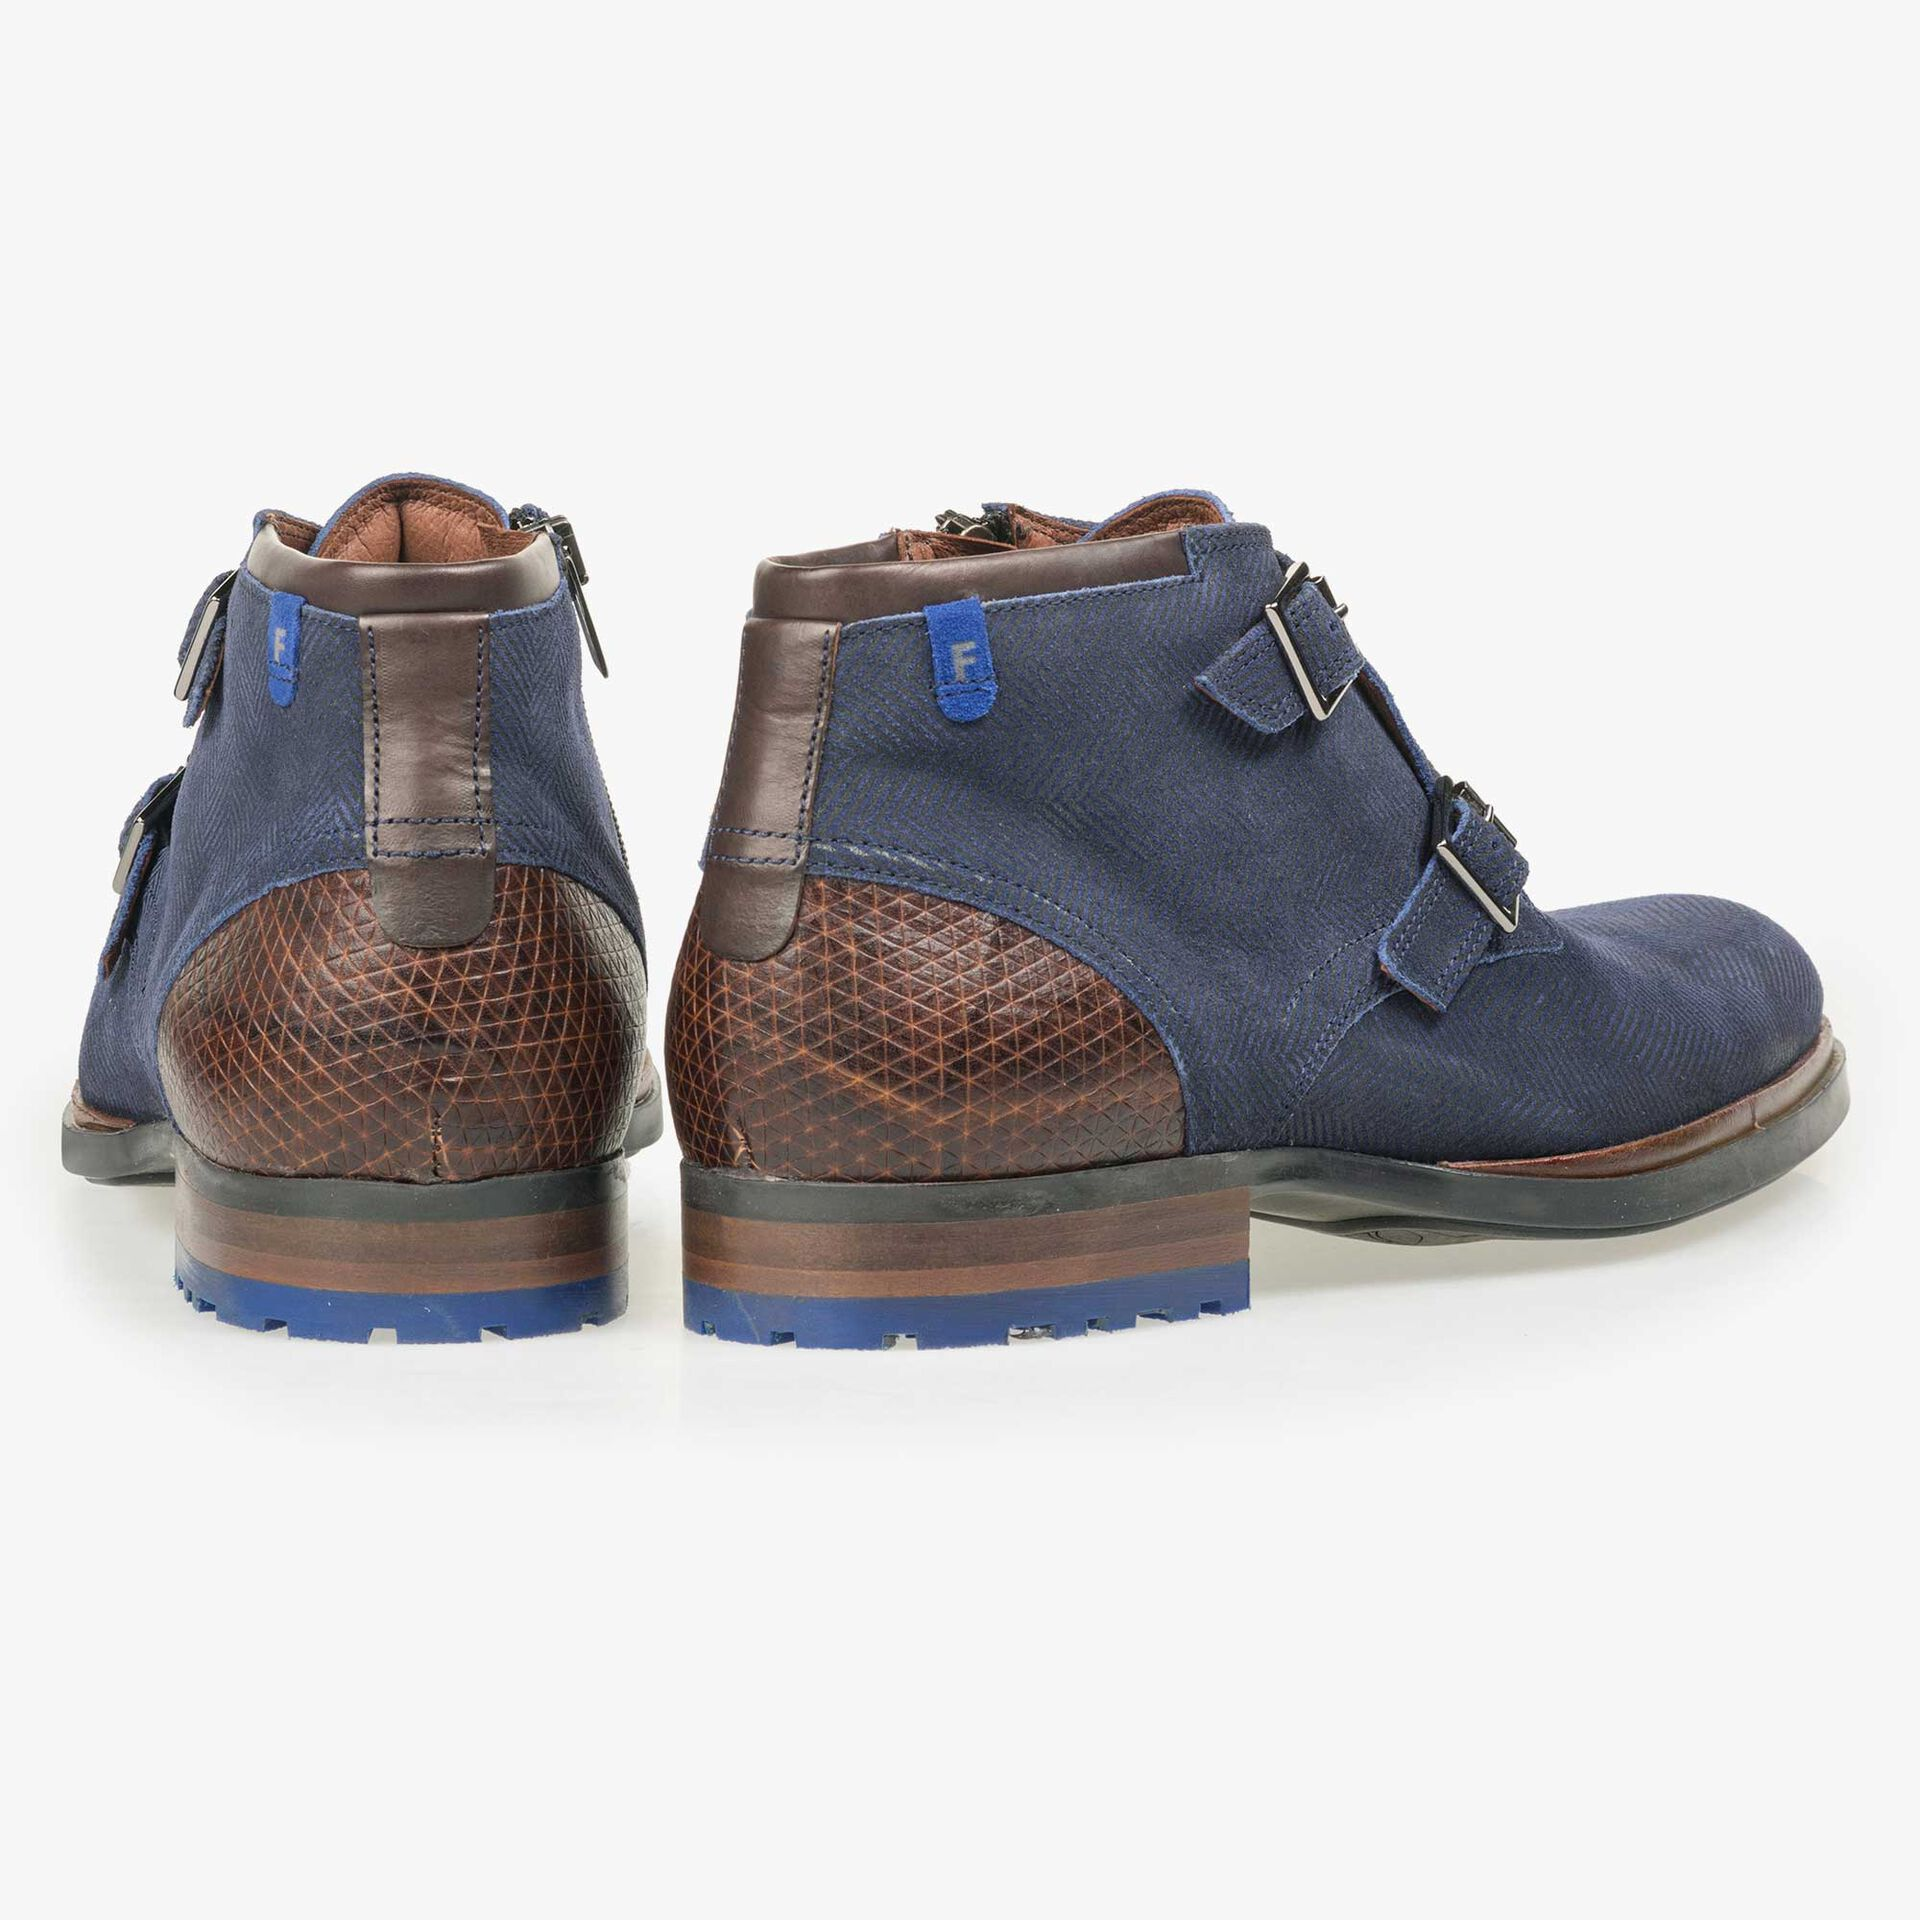 Floris van Bommel men's blue suede leather zip boot